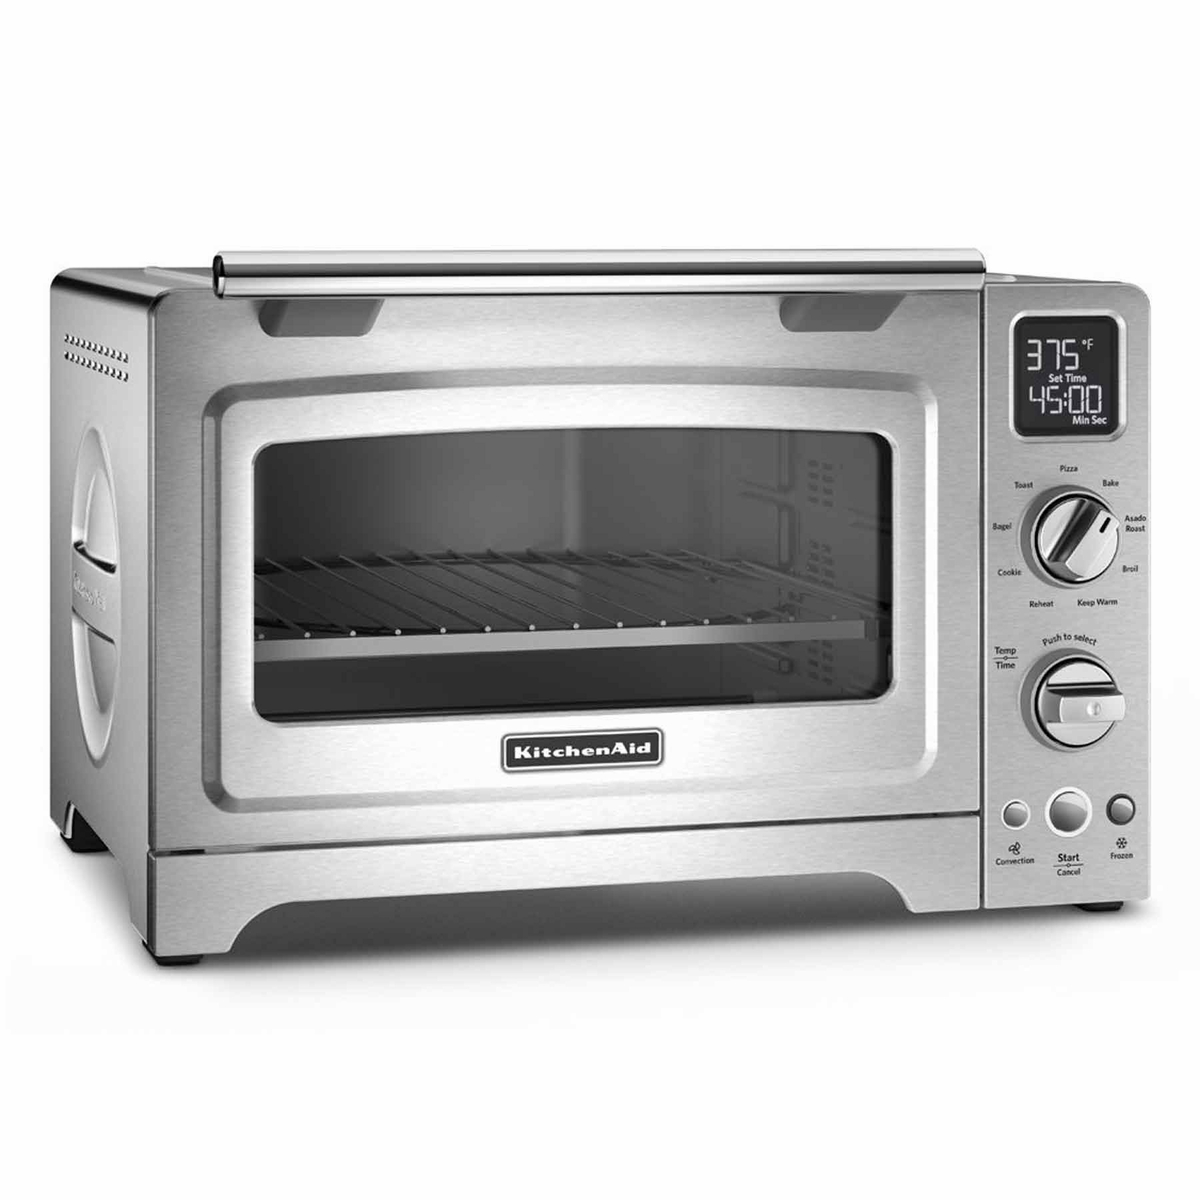 Countertop Convection Oven Kitchenaid : KitchenAid KCO275SS 1800 Watt Countertop Digital Convection Oven ...